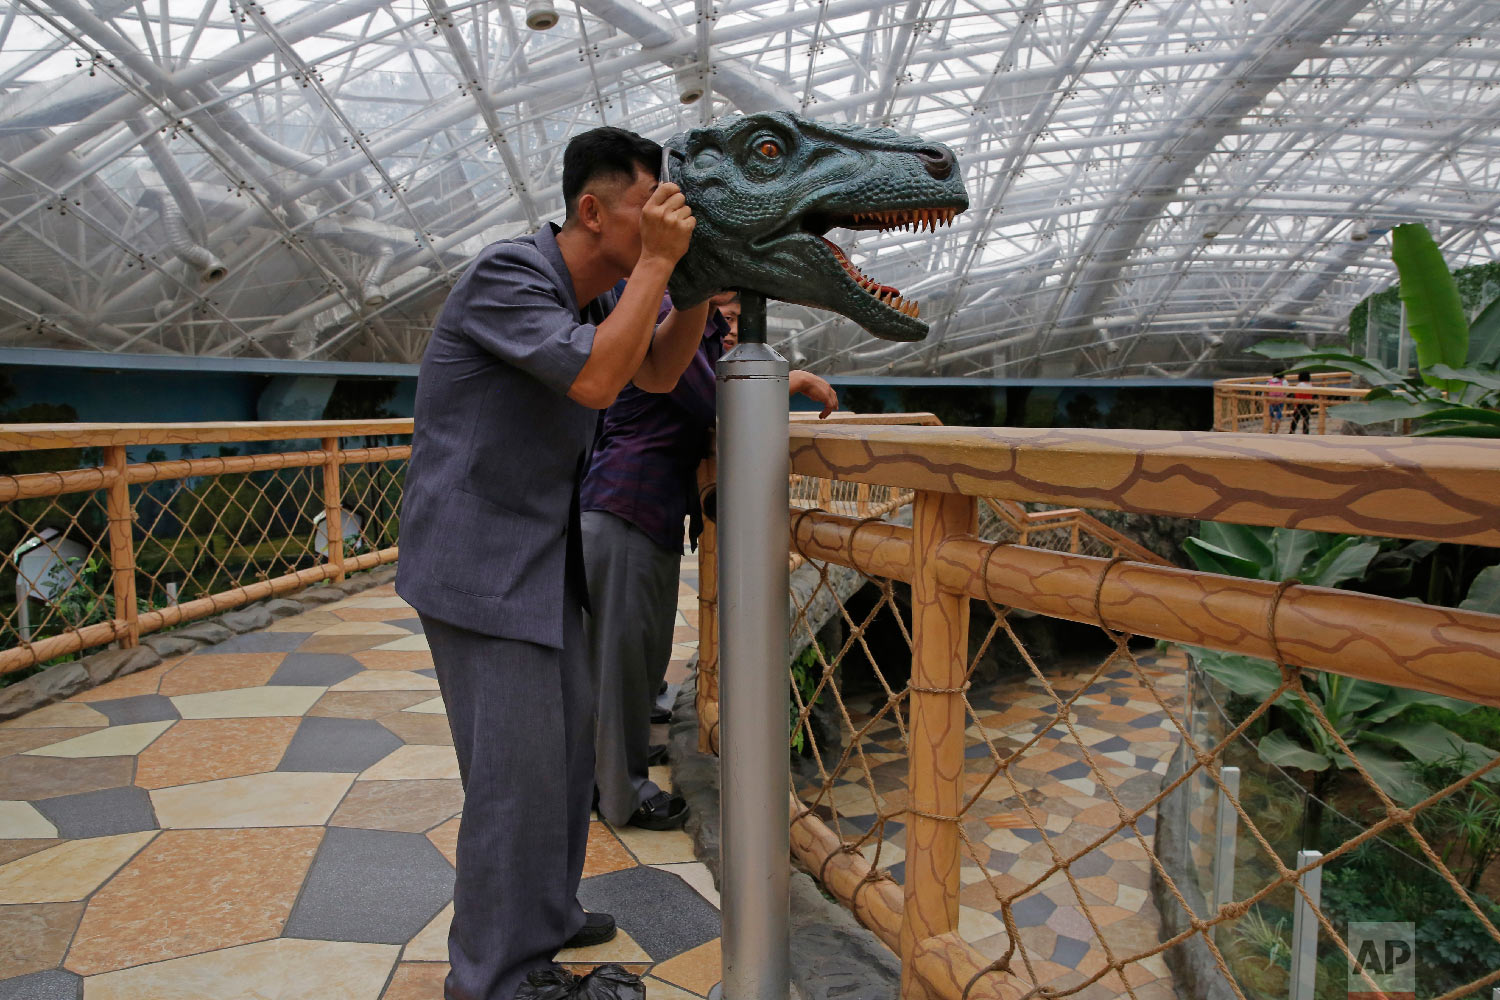 A North Korean man looks through a device to study the vision of a dinosaur, at the Central Zoo in Pyongyang, North Korea Saturday, Sept. 15, 2018. (AP Photo/Kin Cheung)